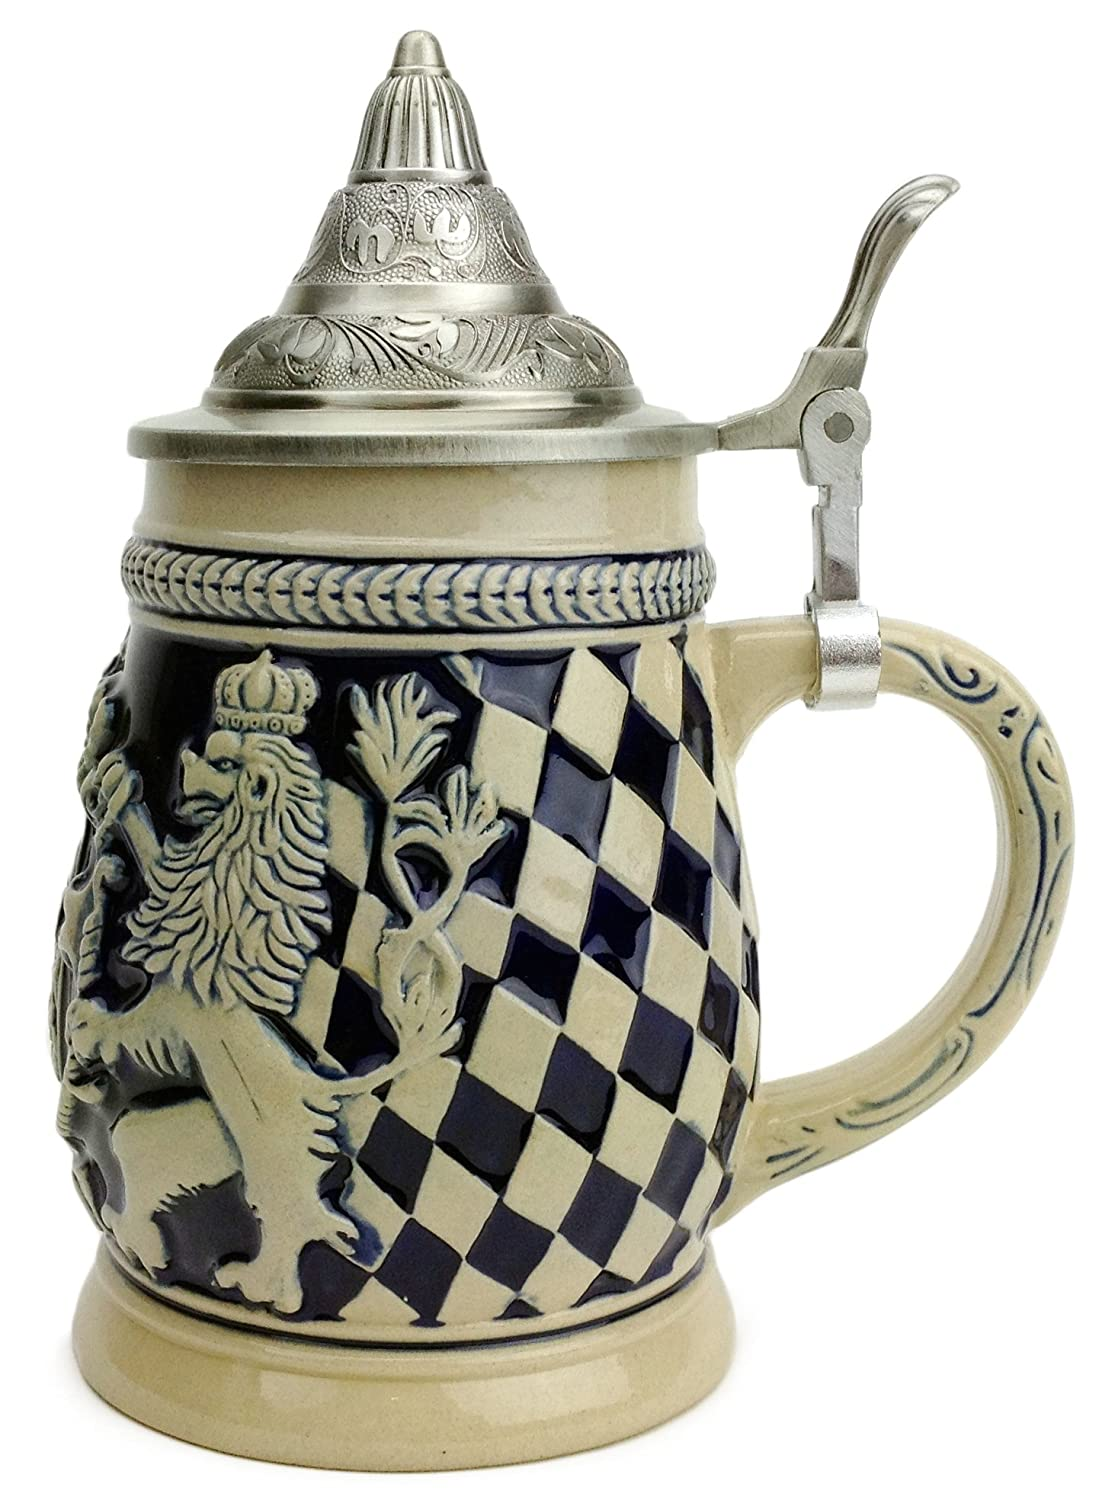 Germany Bayern Coat of Arms Ceramic Collectible Beer Stein with Metal Lid Essence of Europe Gifts E.H.G S4103